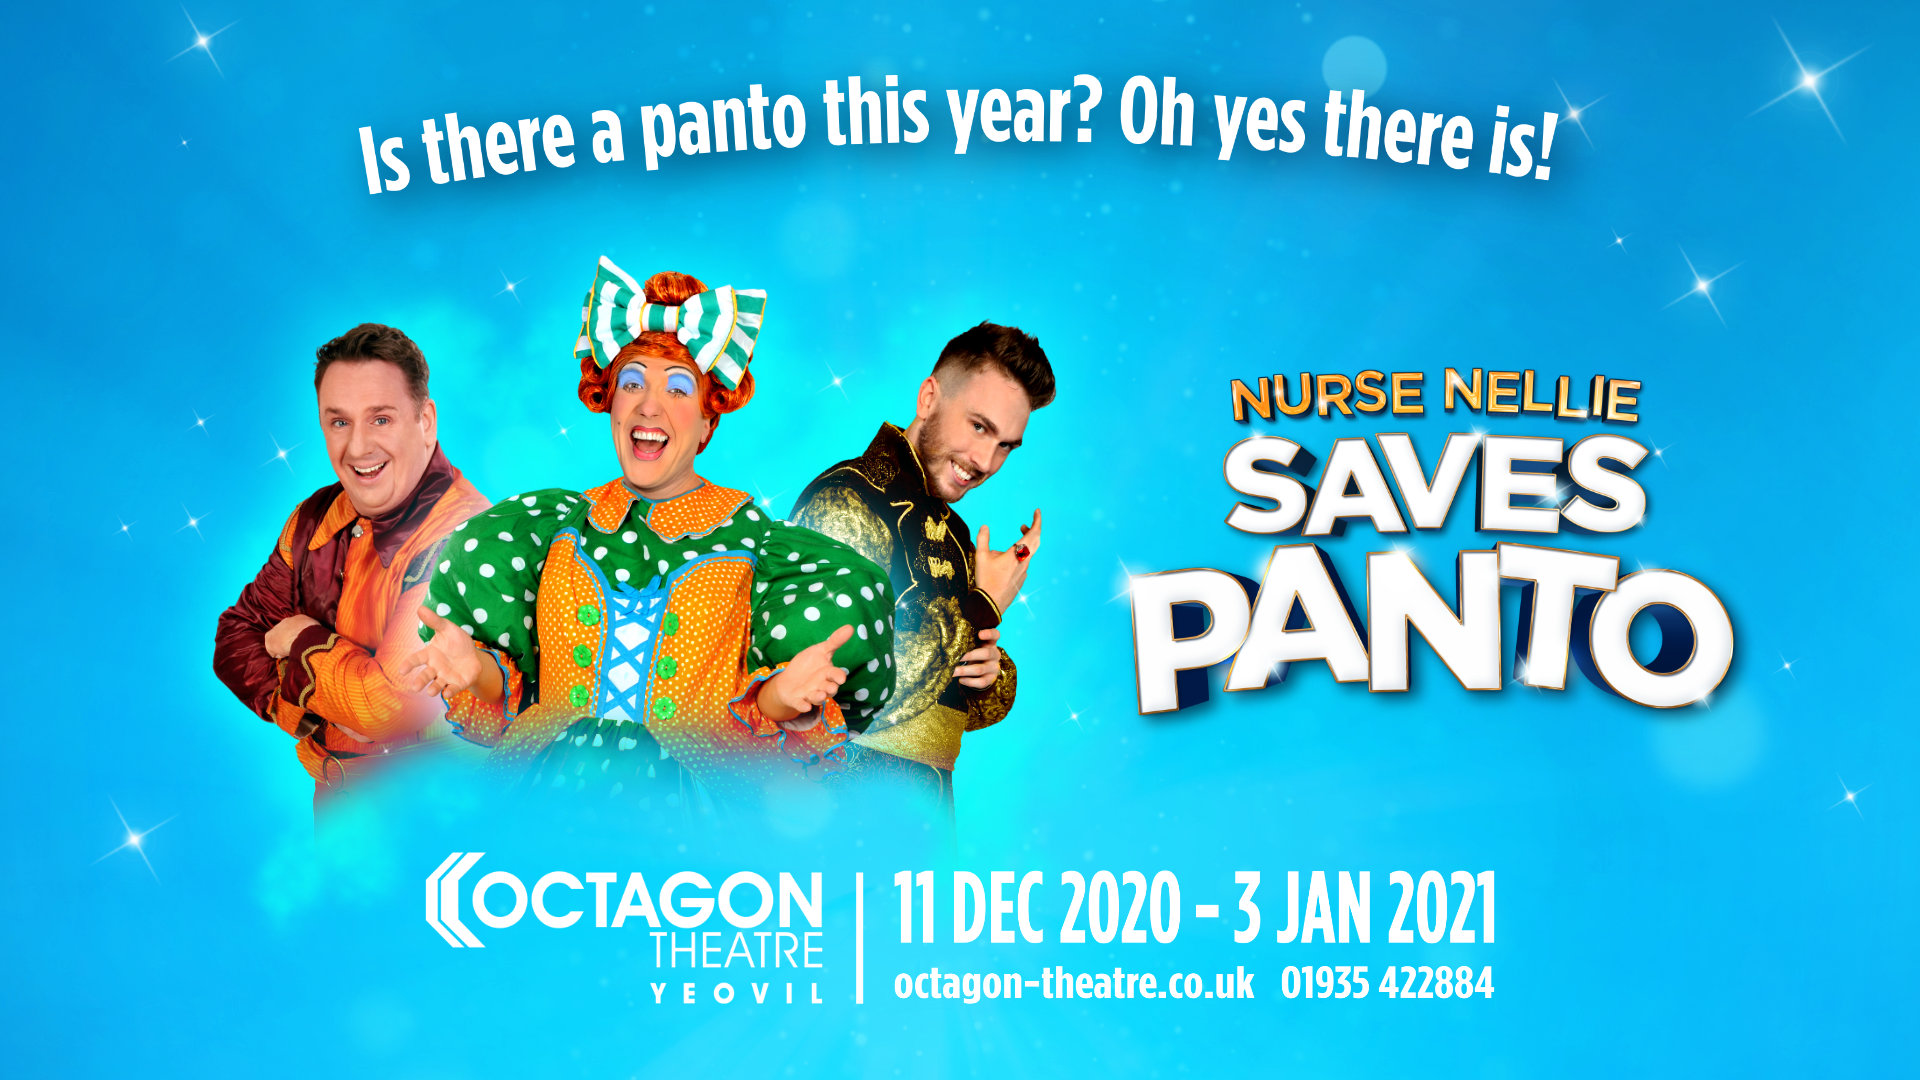 Is there a panto this year? Oh Yes There is!